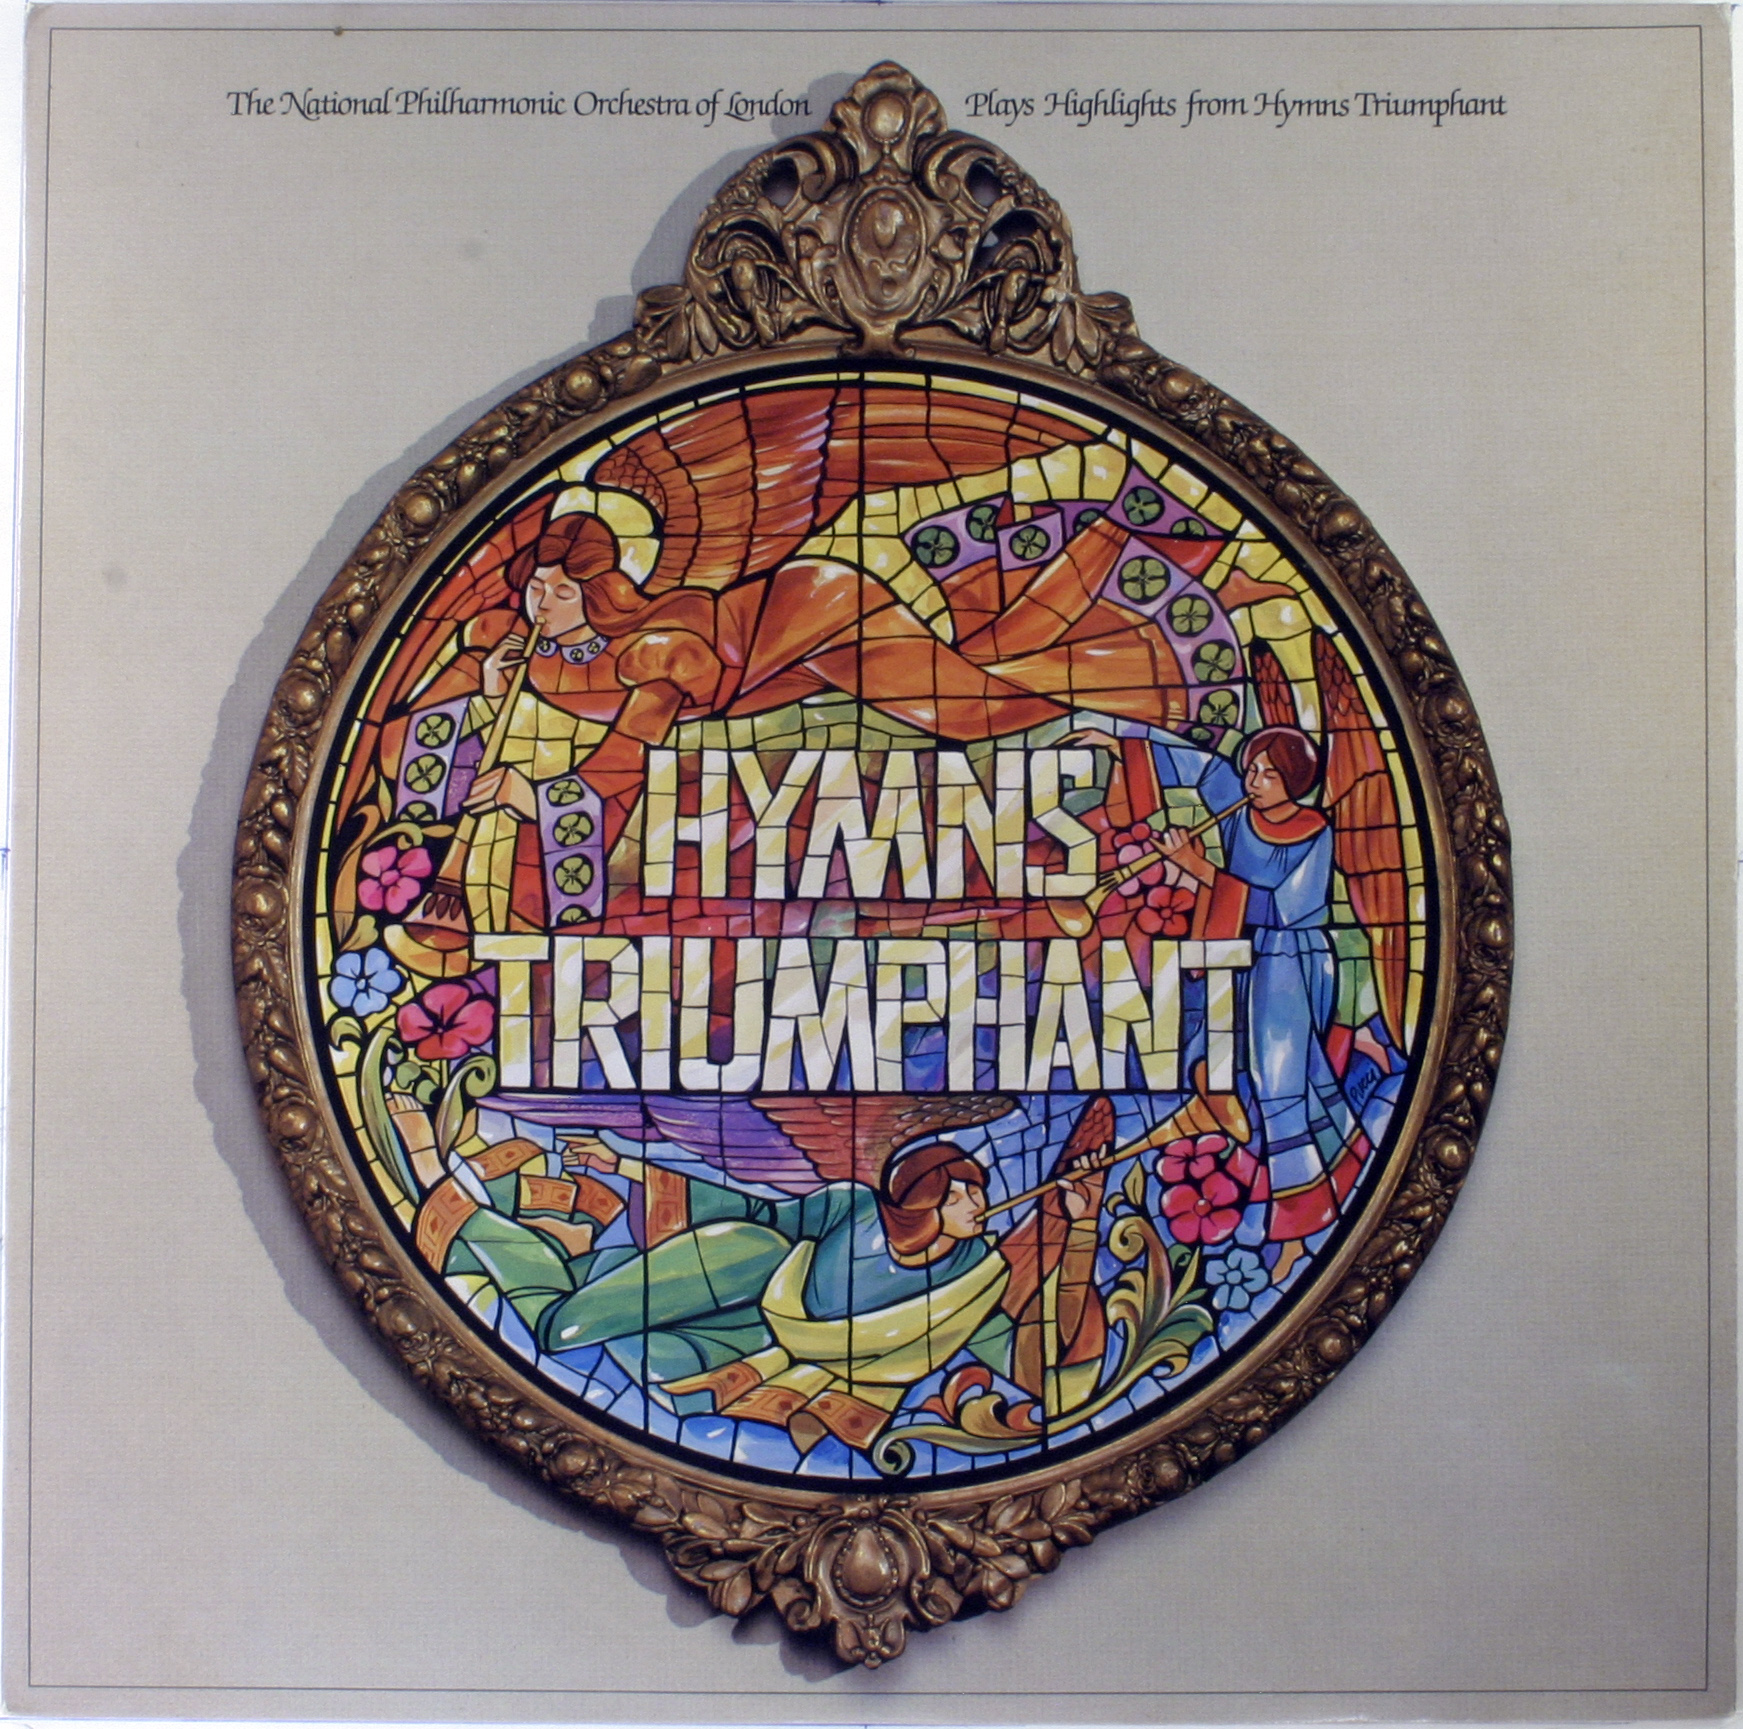 Highlights From Hymns Triumphant